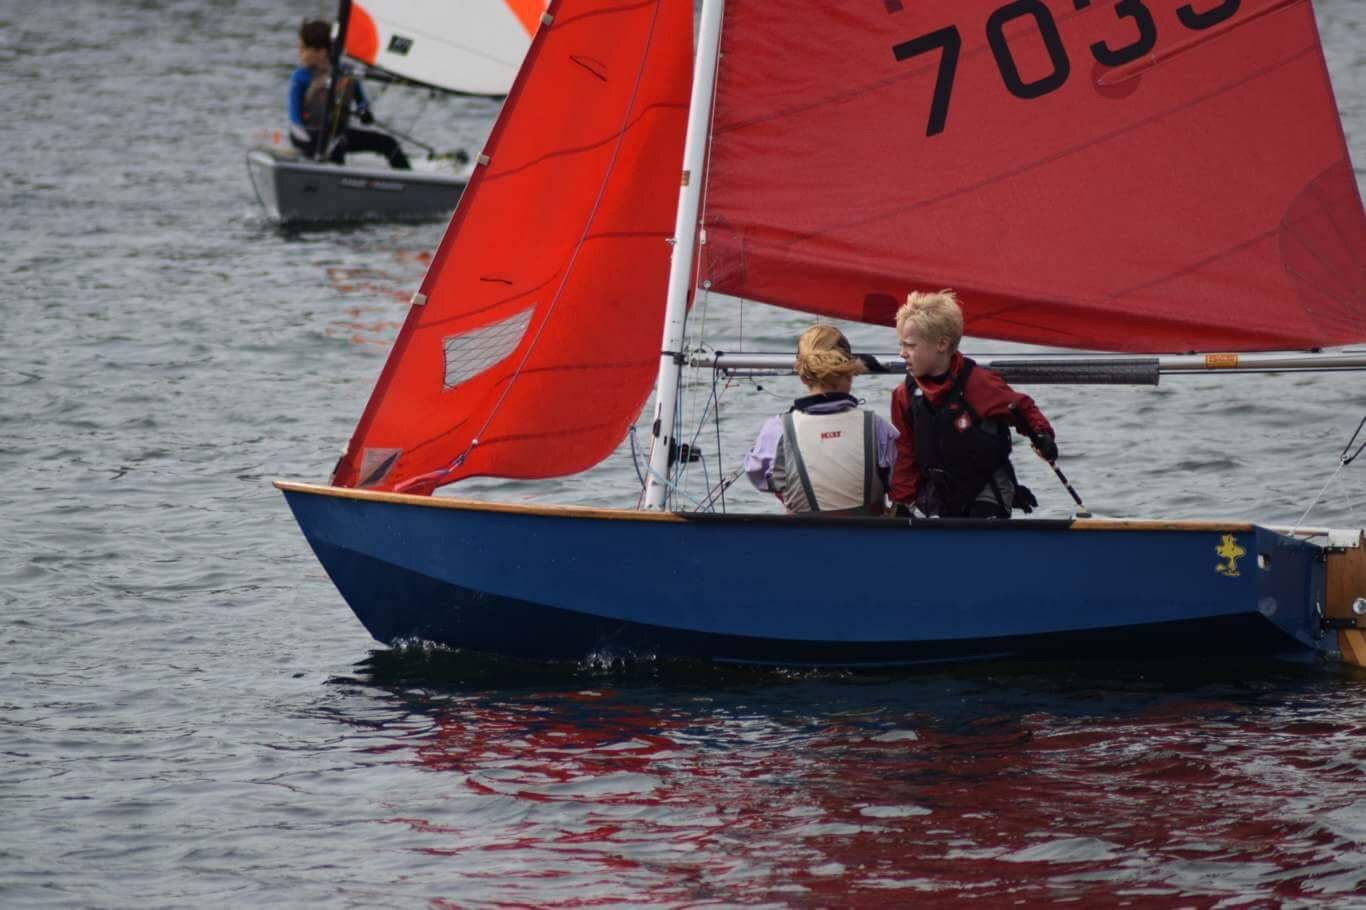 A blue wooden Mirror dinghy just being tacked very stylishly by a young boy